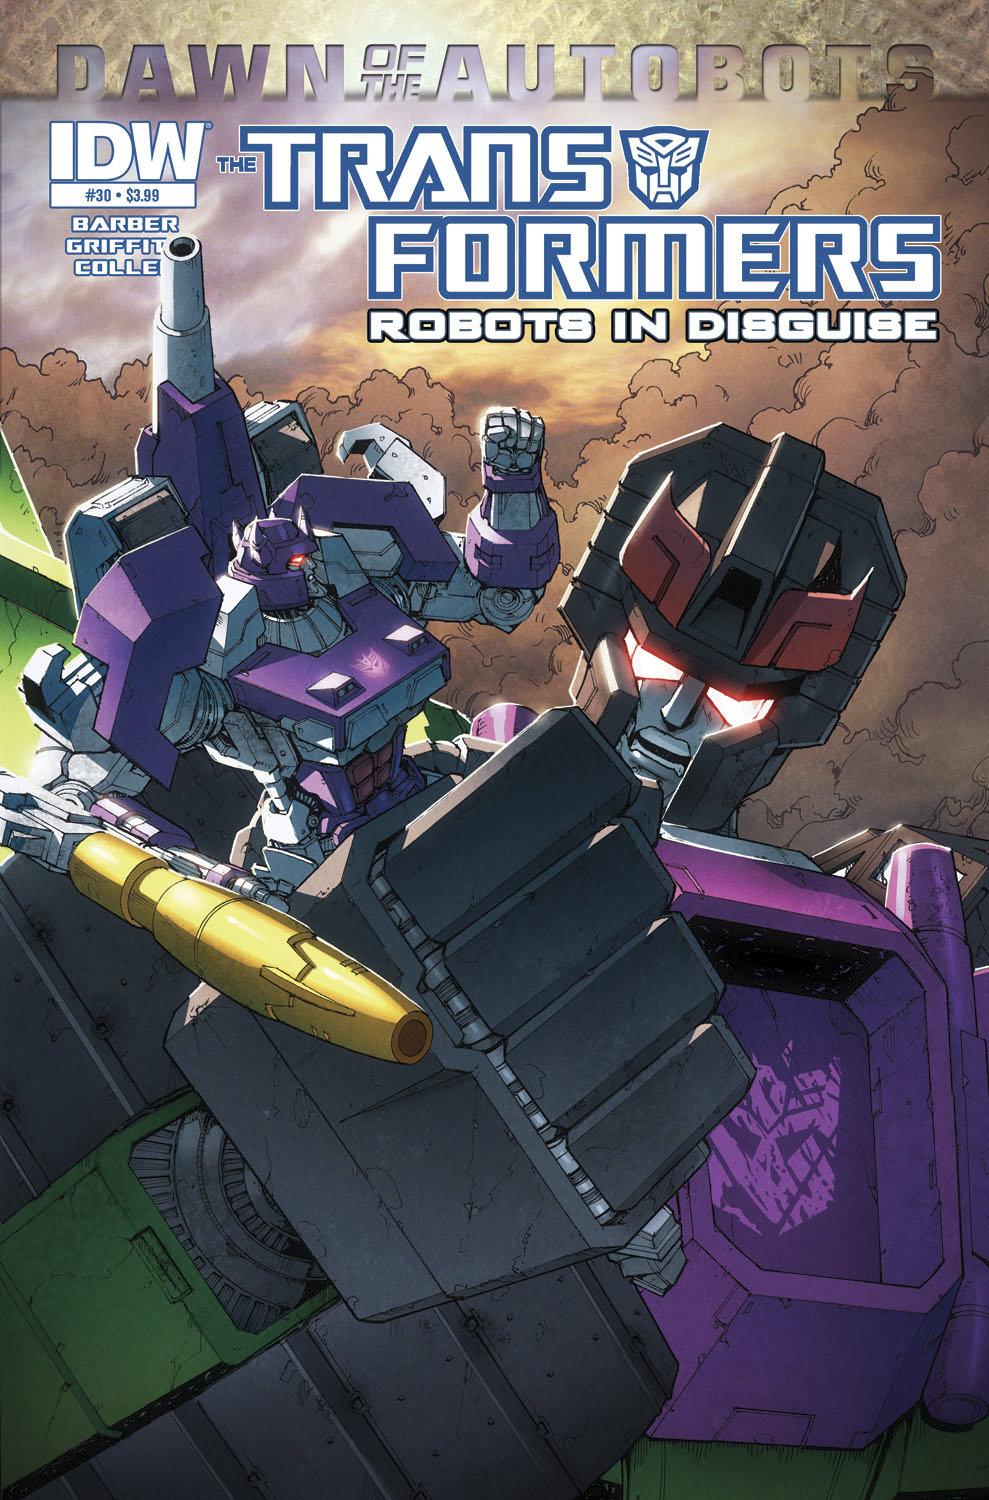 TRANSFORMERS ROBOTS IN DISGUISE #30 DAWN O/T AUTOBOTS